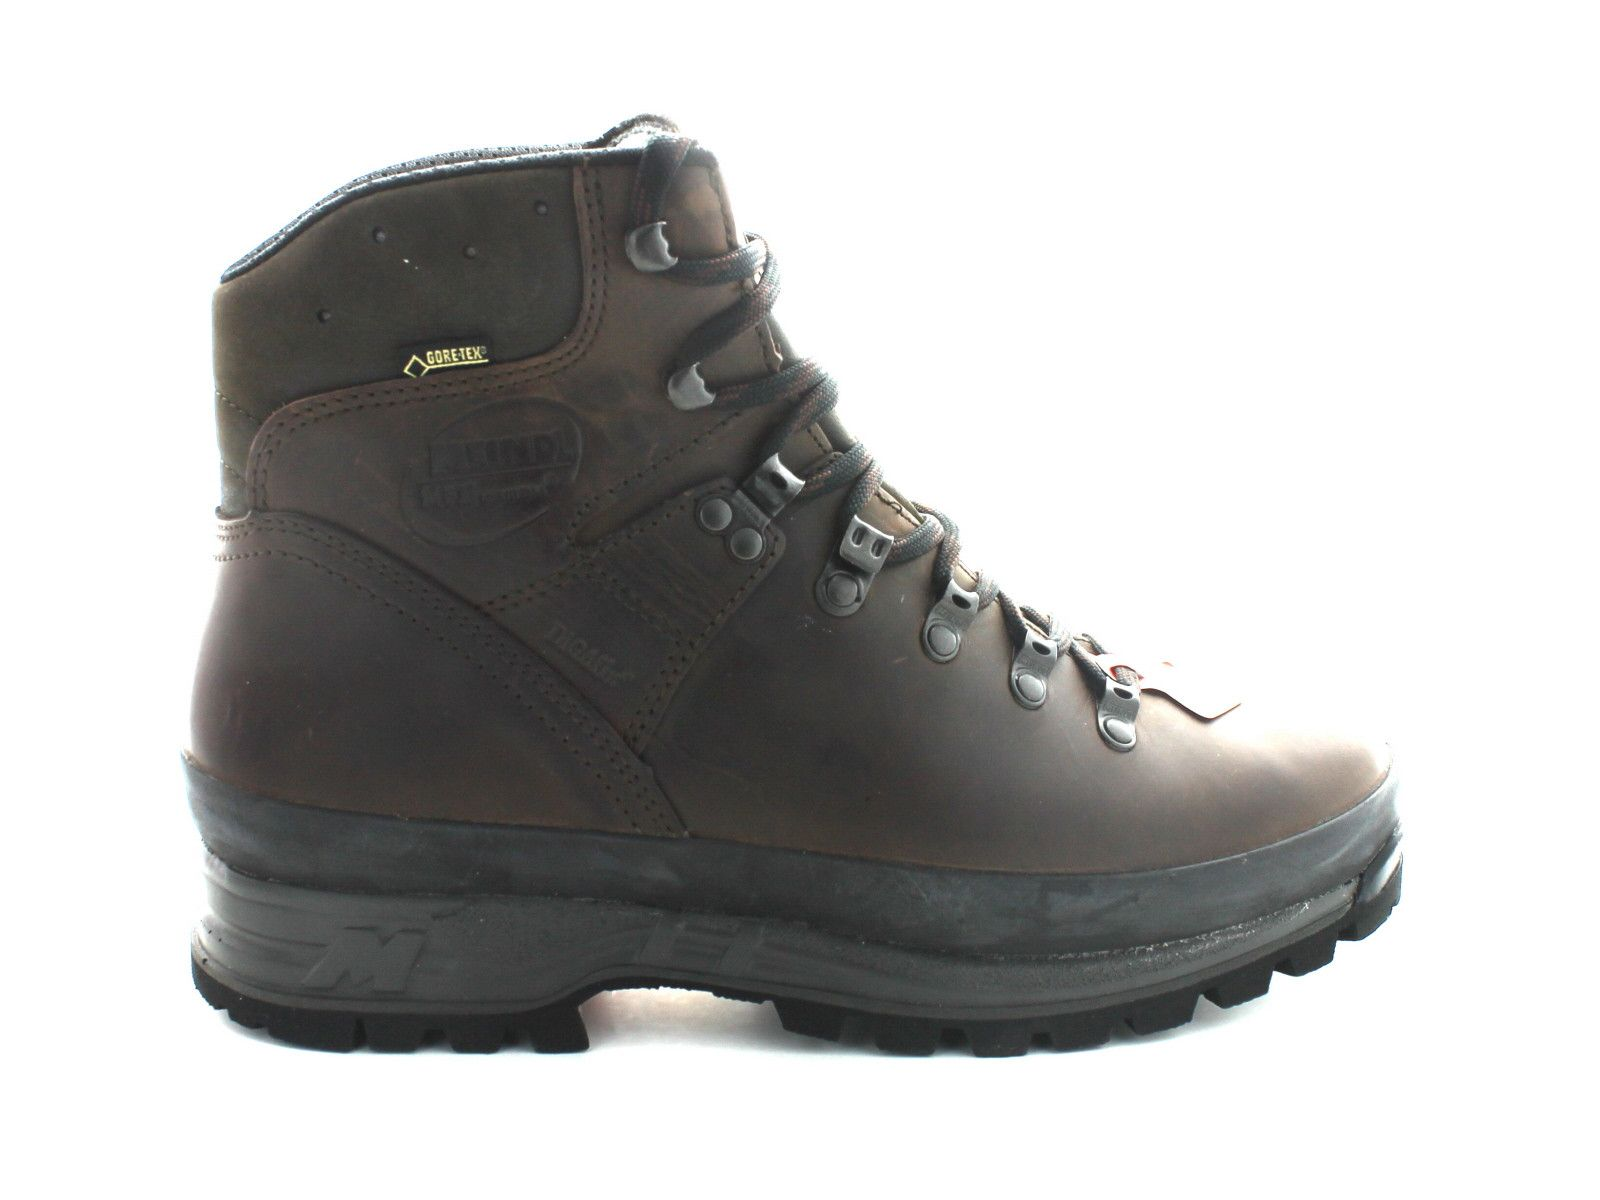 Meindl Burma Pro MFS  Hiking Shoes /& Boots  Men/'s